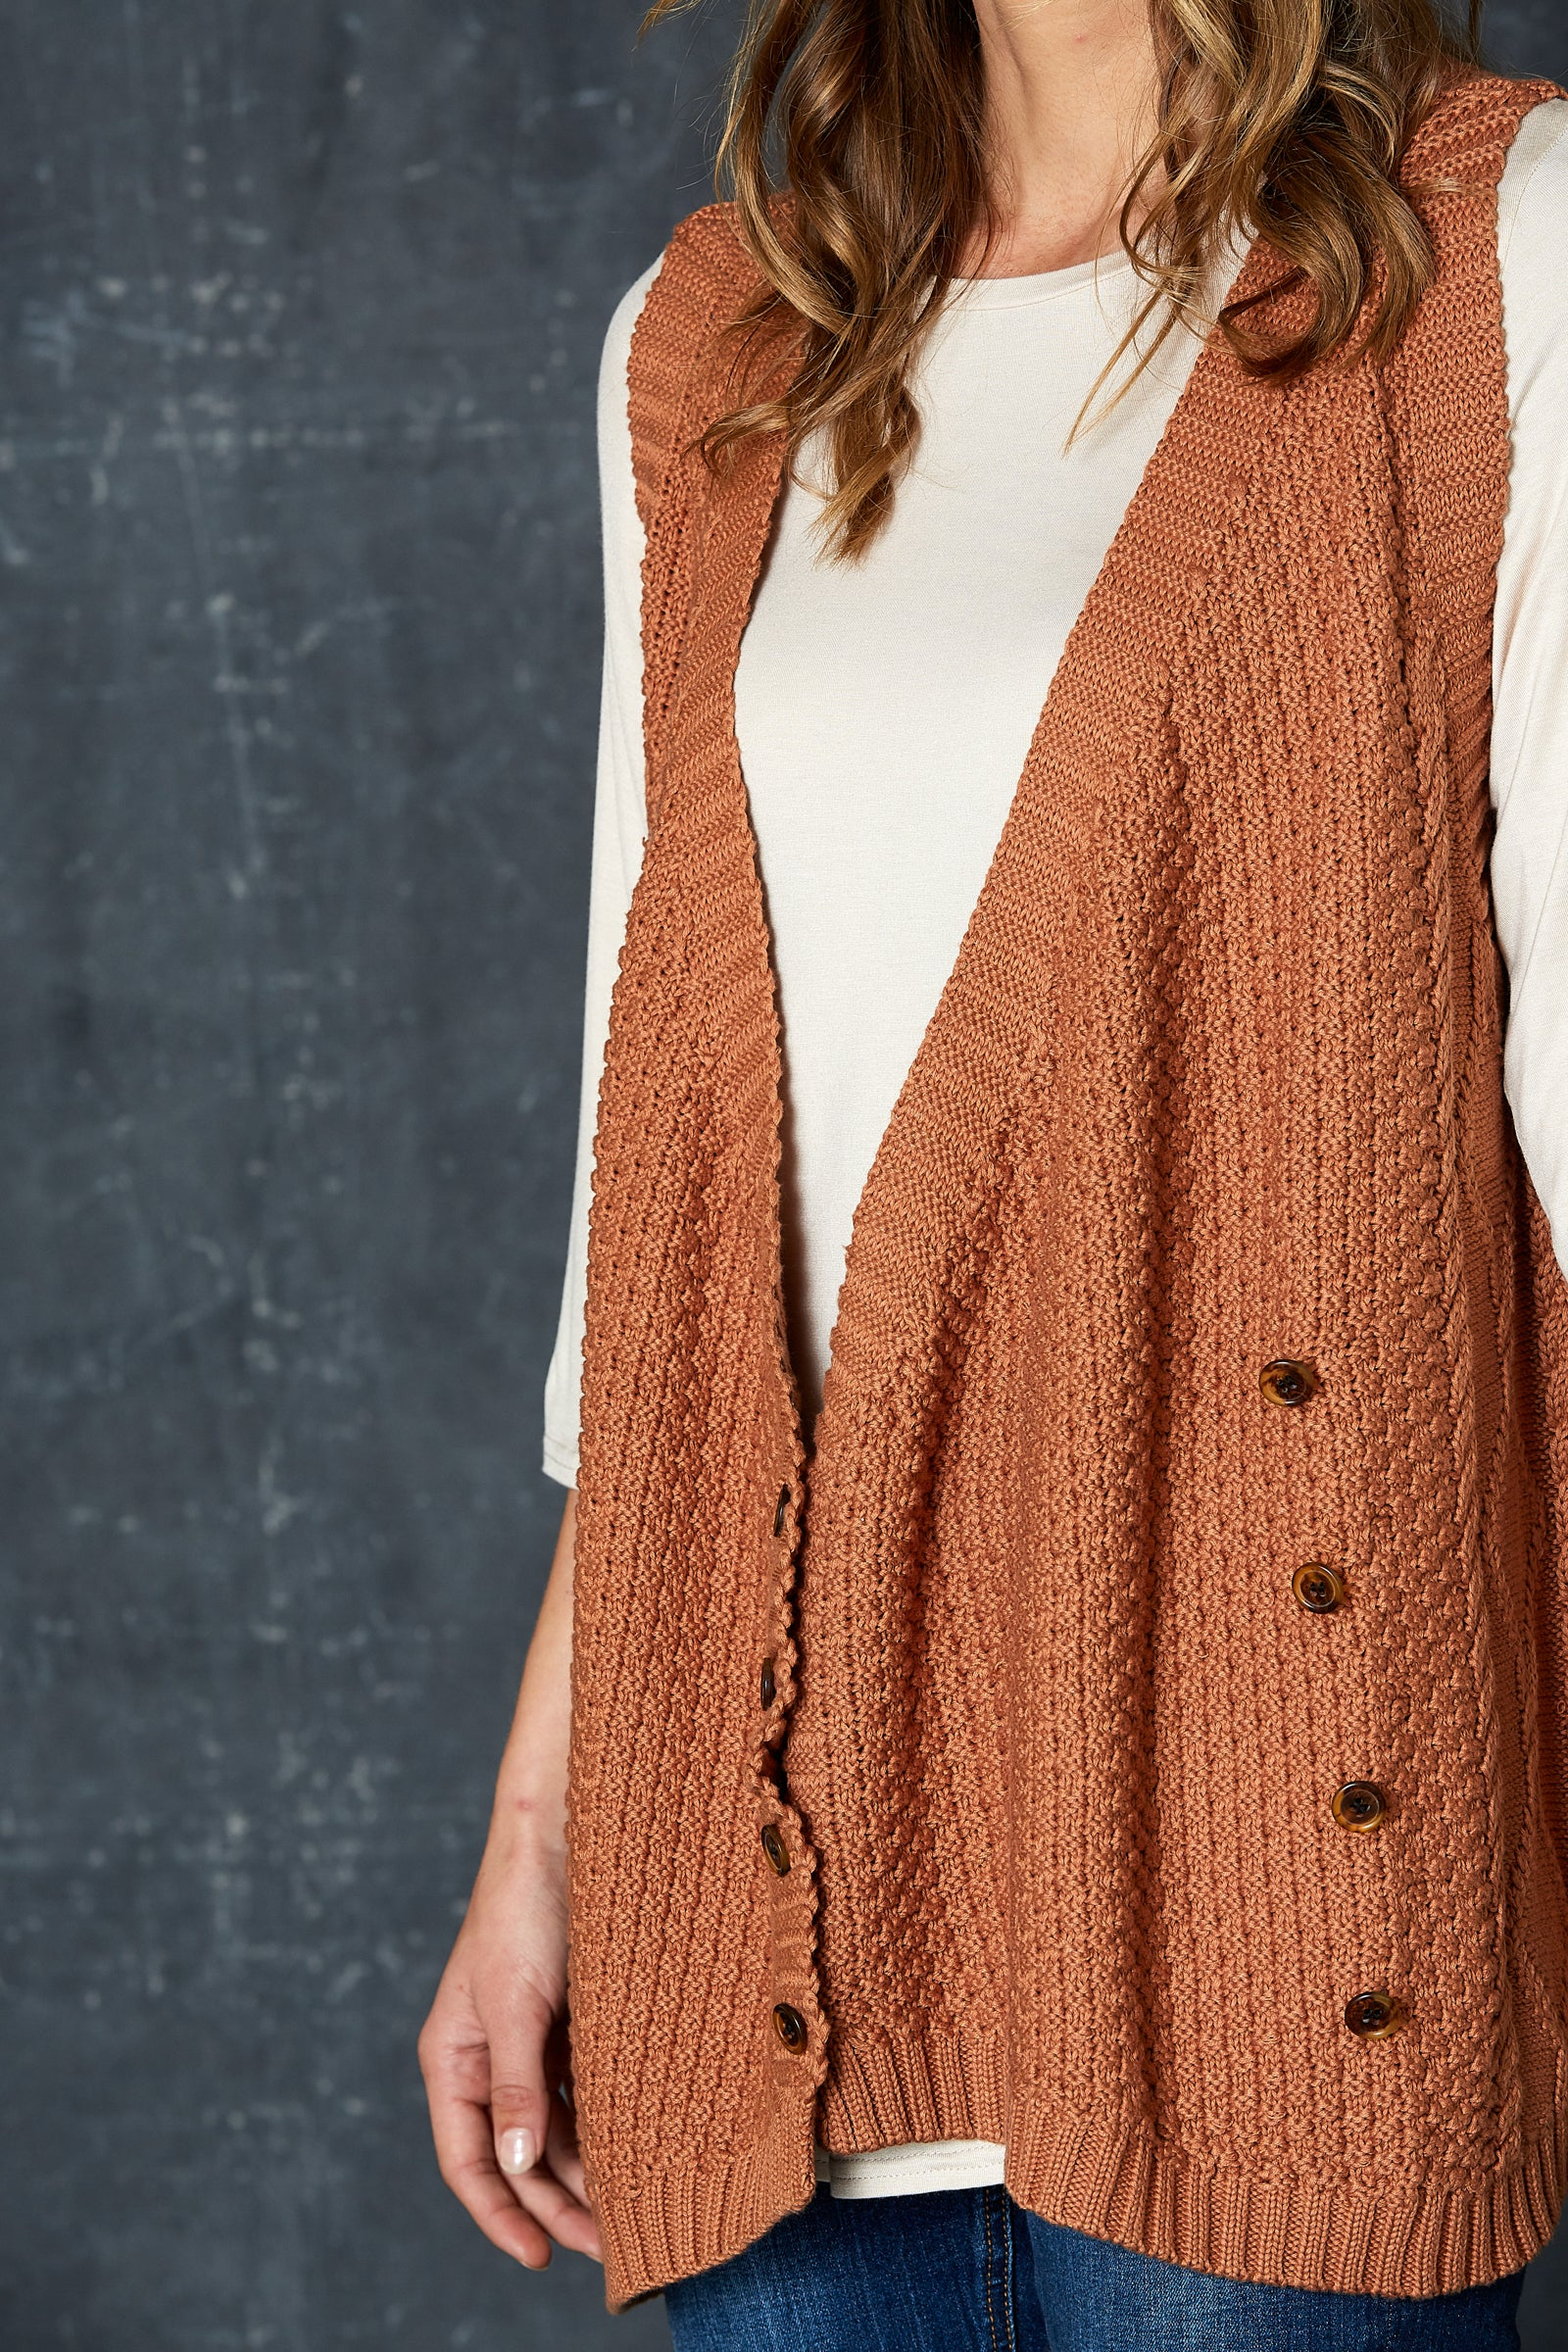 Unwind Cable Vest - Caramel - eb&ive Clothing - Knit Vest One Size